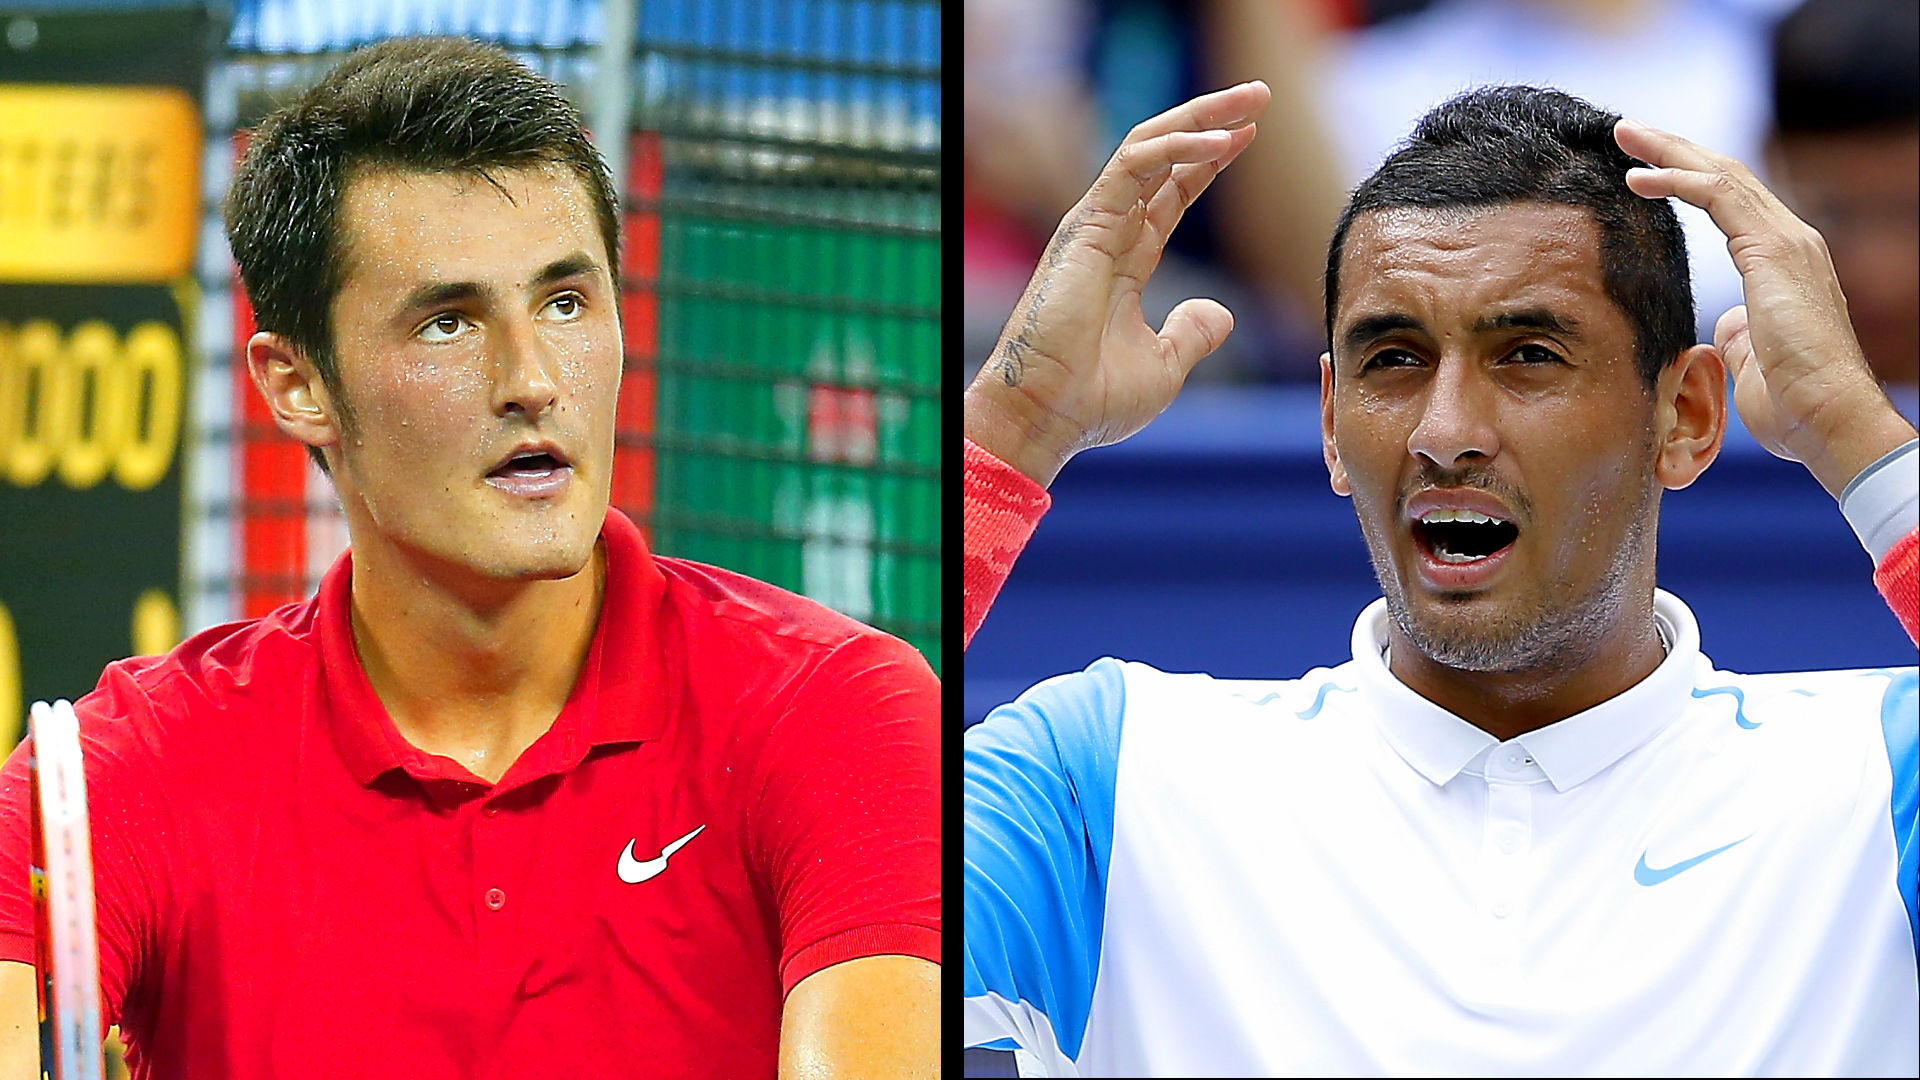 tomic-kyrgios120215-getty-ftr.jpg